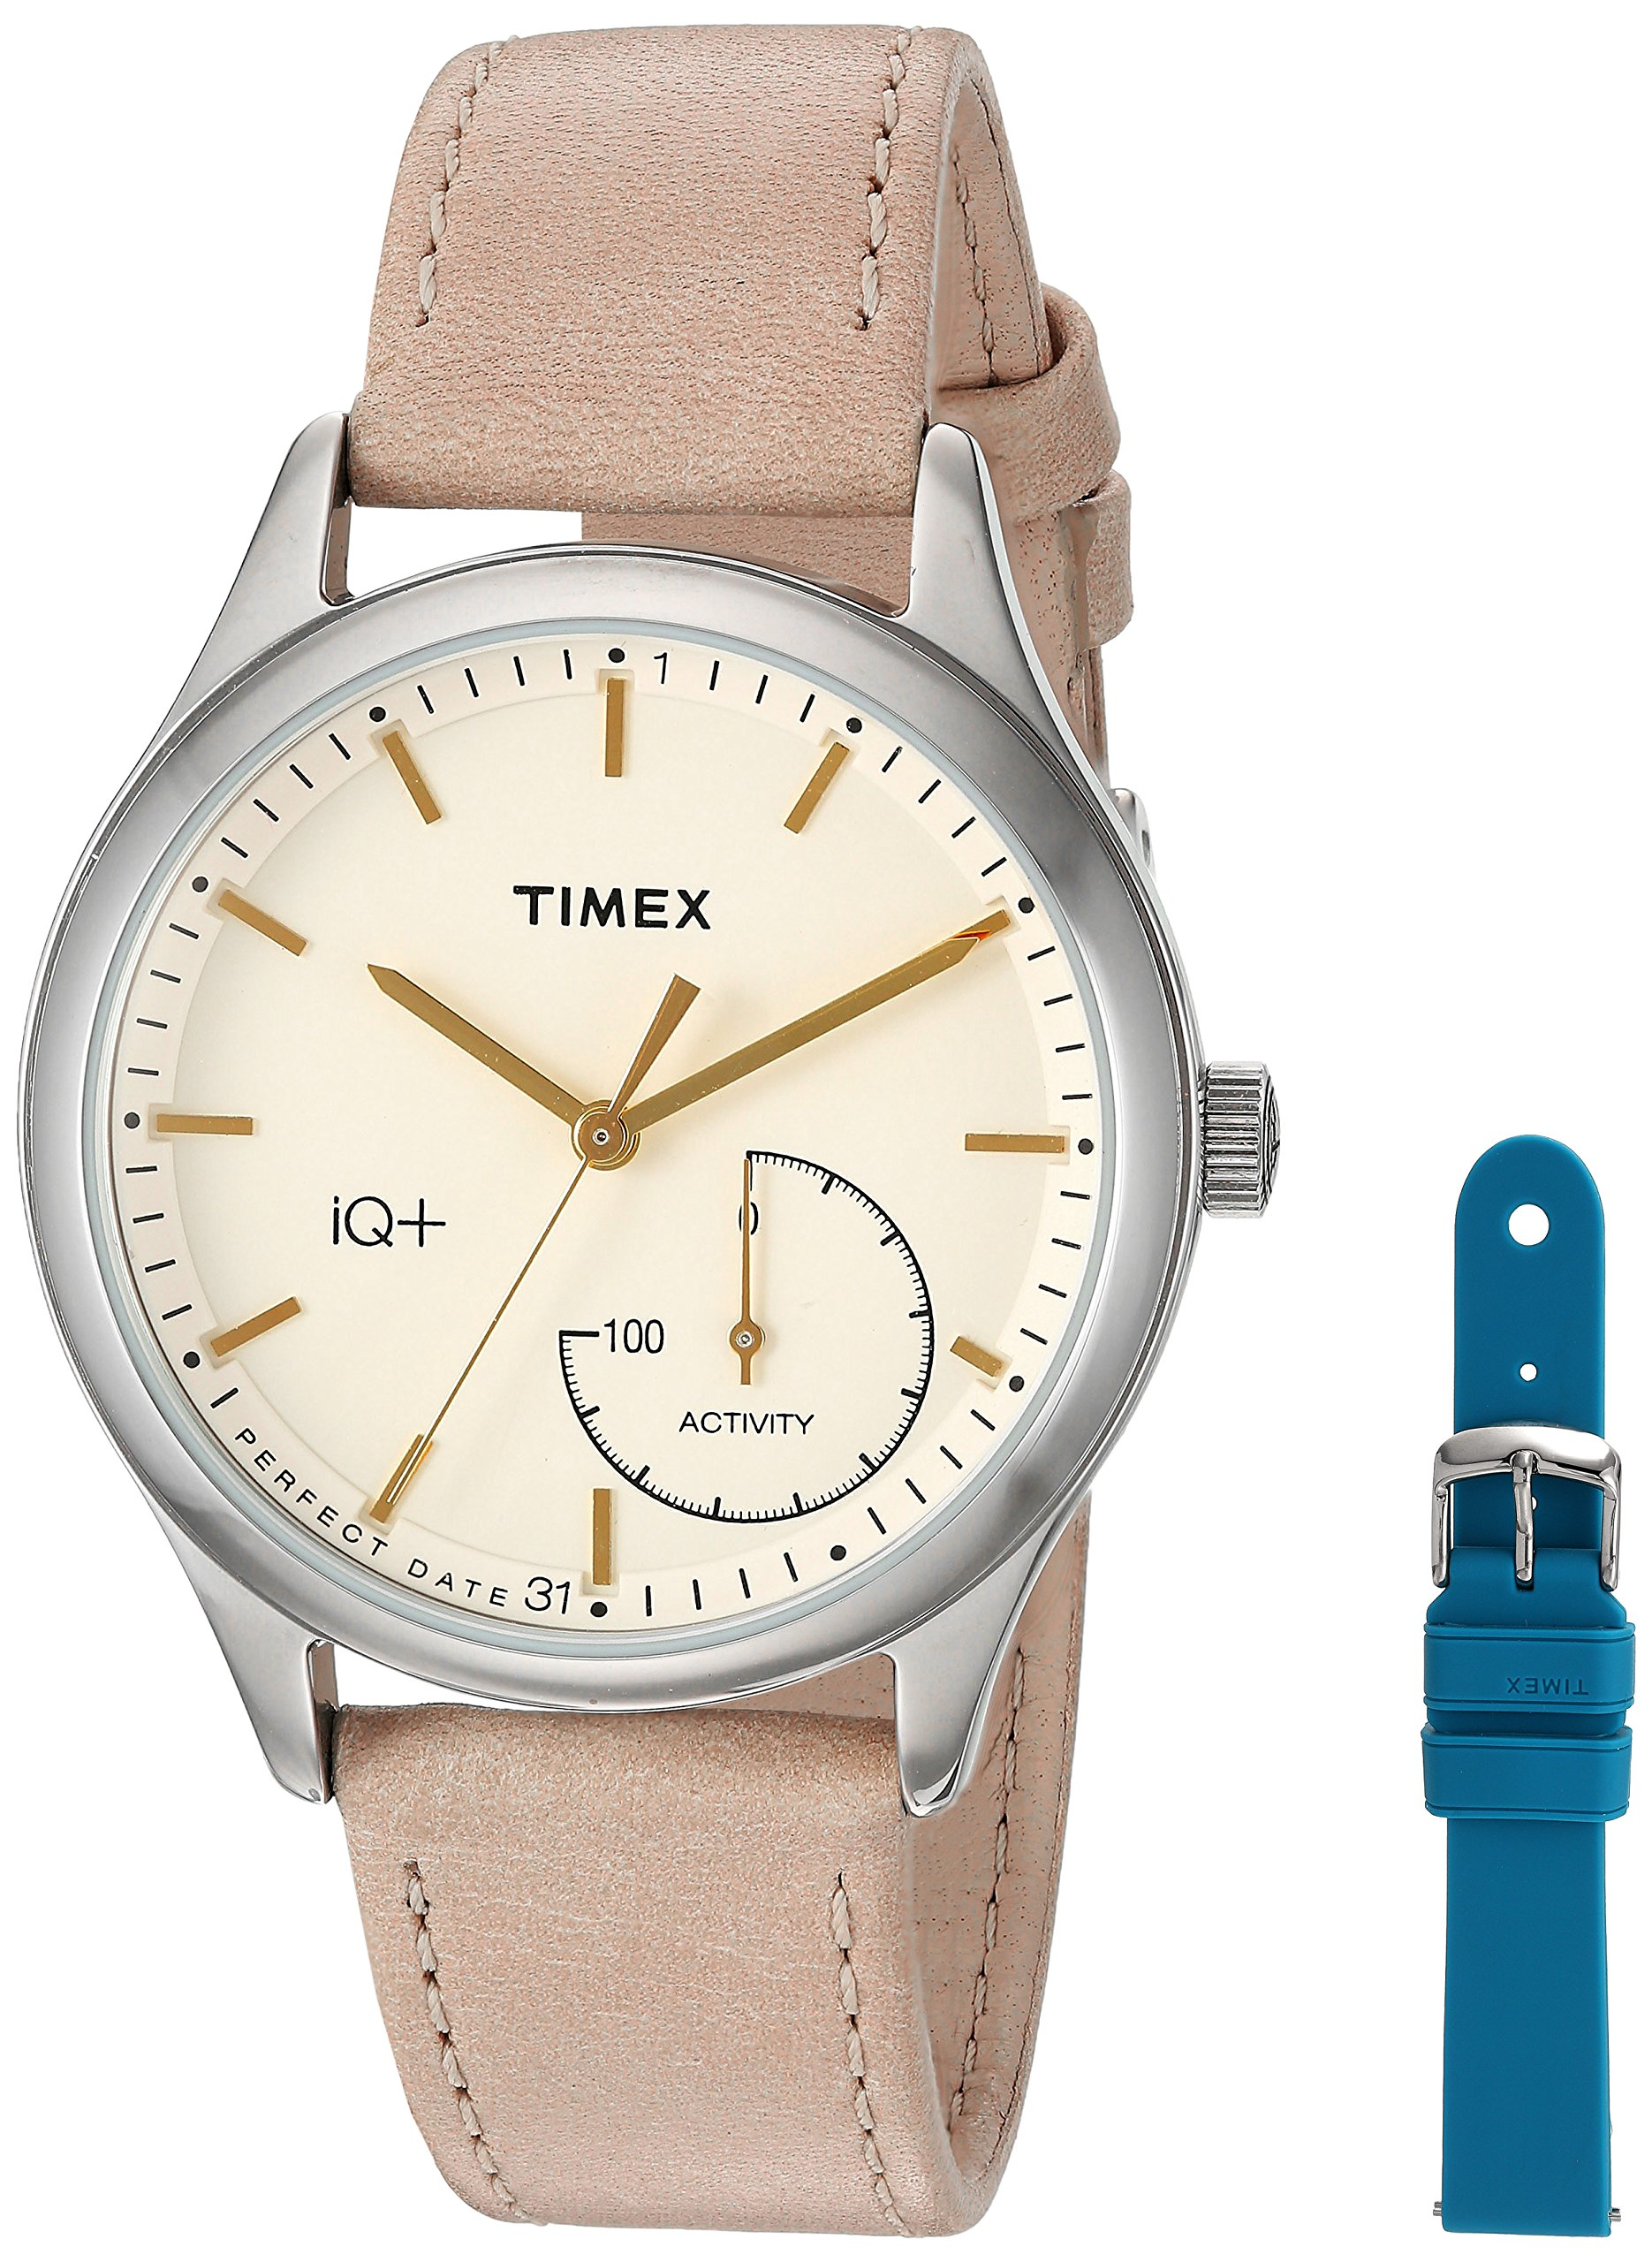 Timex Women's TWG013500 IQ+ Move Activity Tracker Tan Leather Strap Smart Watch Set With Extra Teal Silicone Strap by Timex